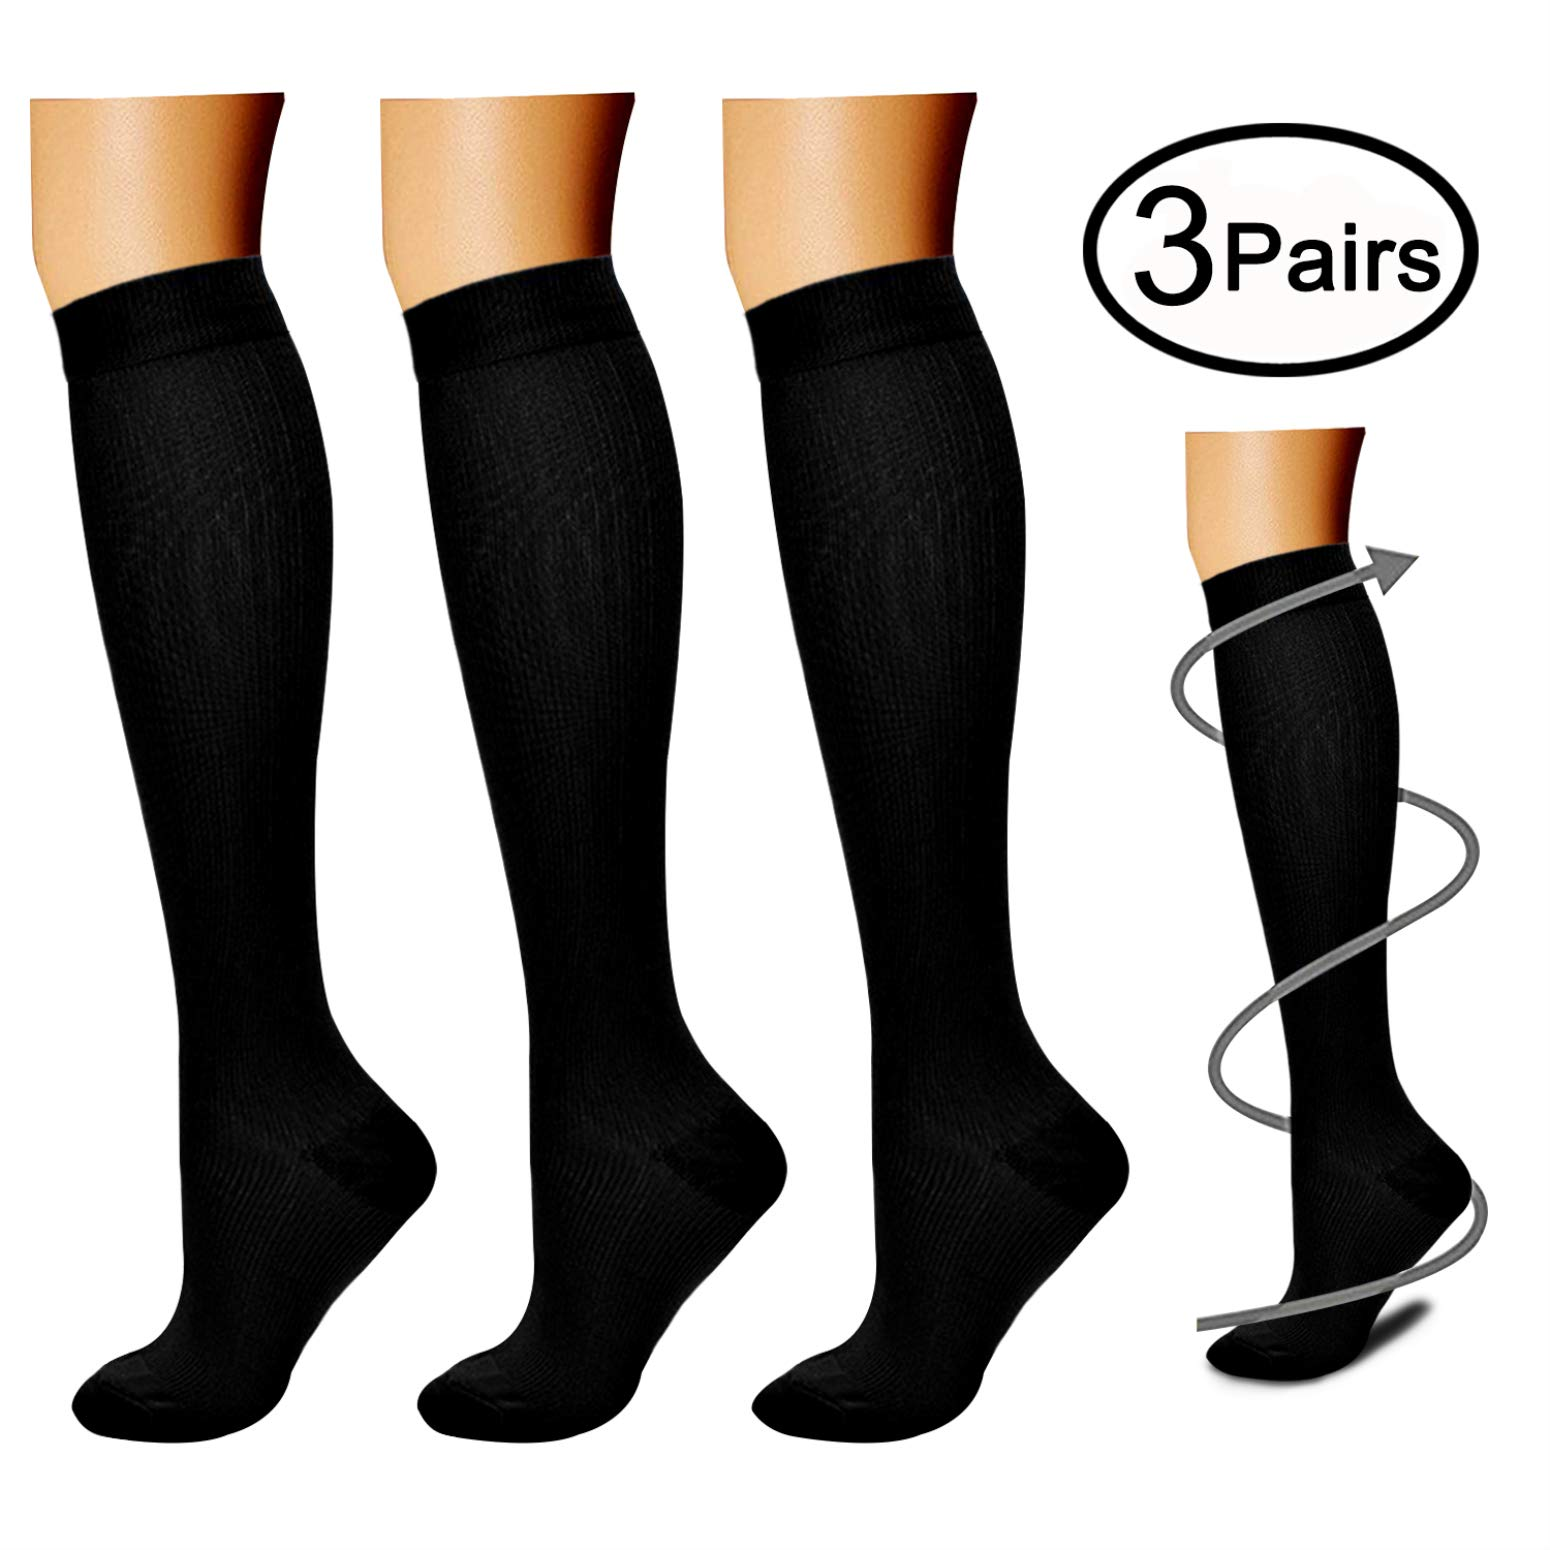 Compression Socks (3 Pairs), 15-20 mmhg is BEST Athletic & Medical for Men & Women, Running, Flight, Travel, Nurses, Pregnant - Boost Performance, Blood Circulation & Recovery (Large/X-Large, Black)